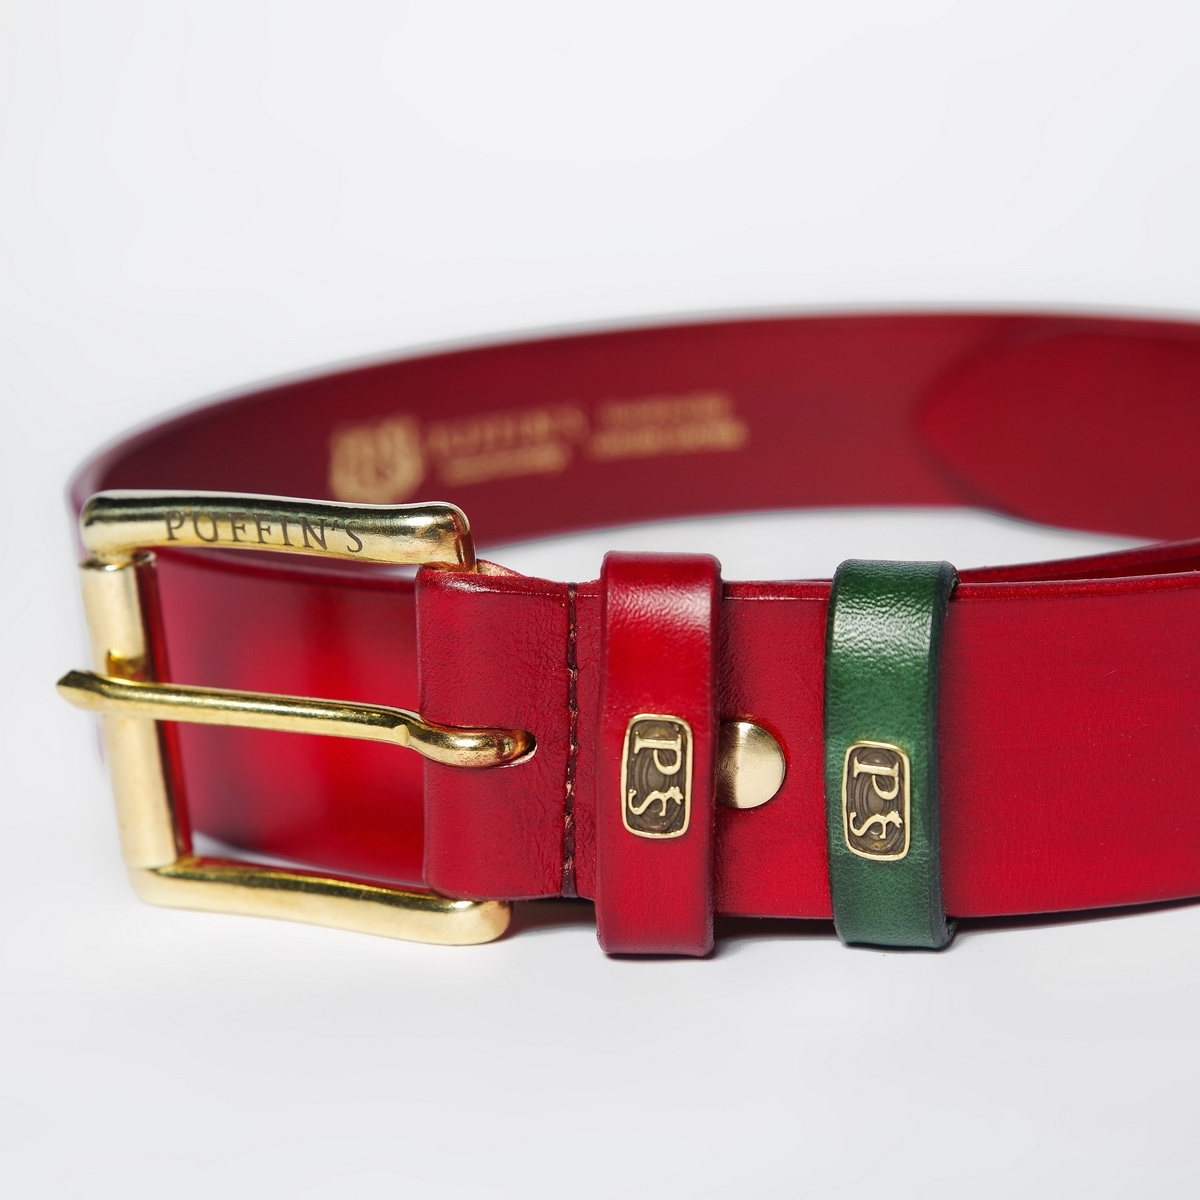 Wide belt for jeans with a 40mm brass buckle red currant